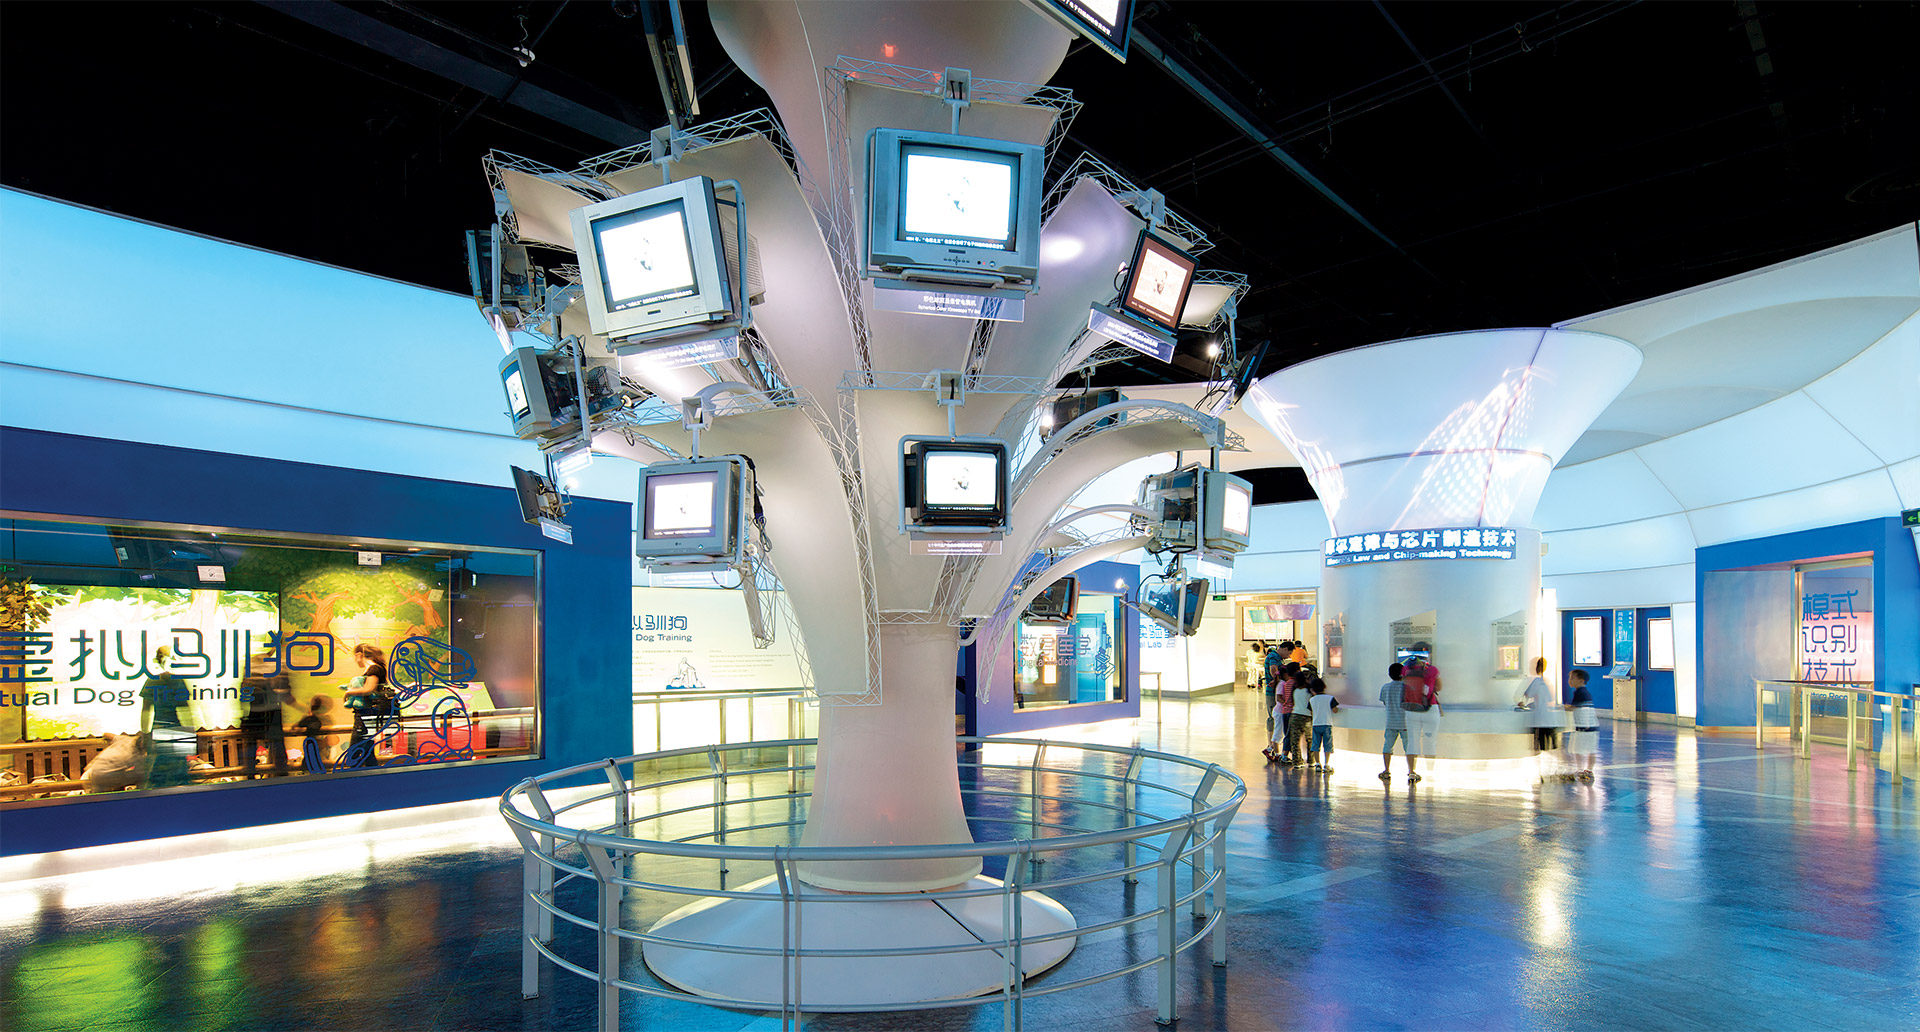 Shanghai Science and Technology Museum Forrec